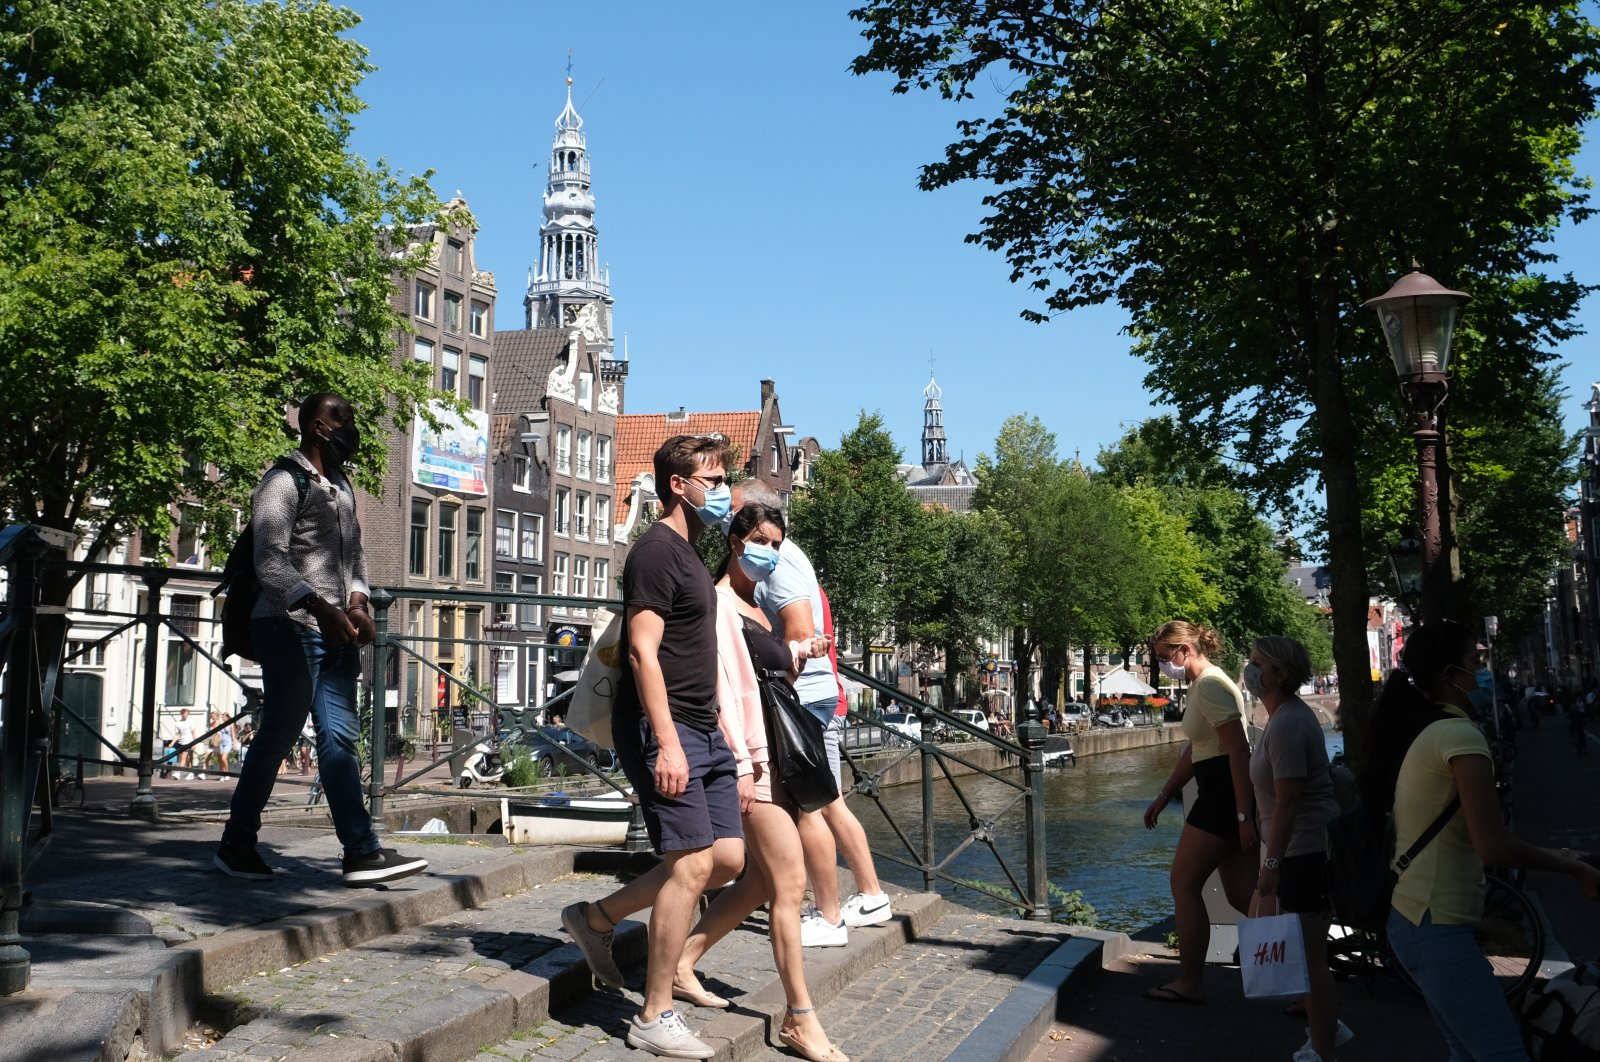 People wearing face masks to prevent the spread of the coronavirus walk through Amsterdam, the Netherlands, Aug. 5, 2020. (AP Photo)